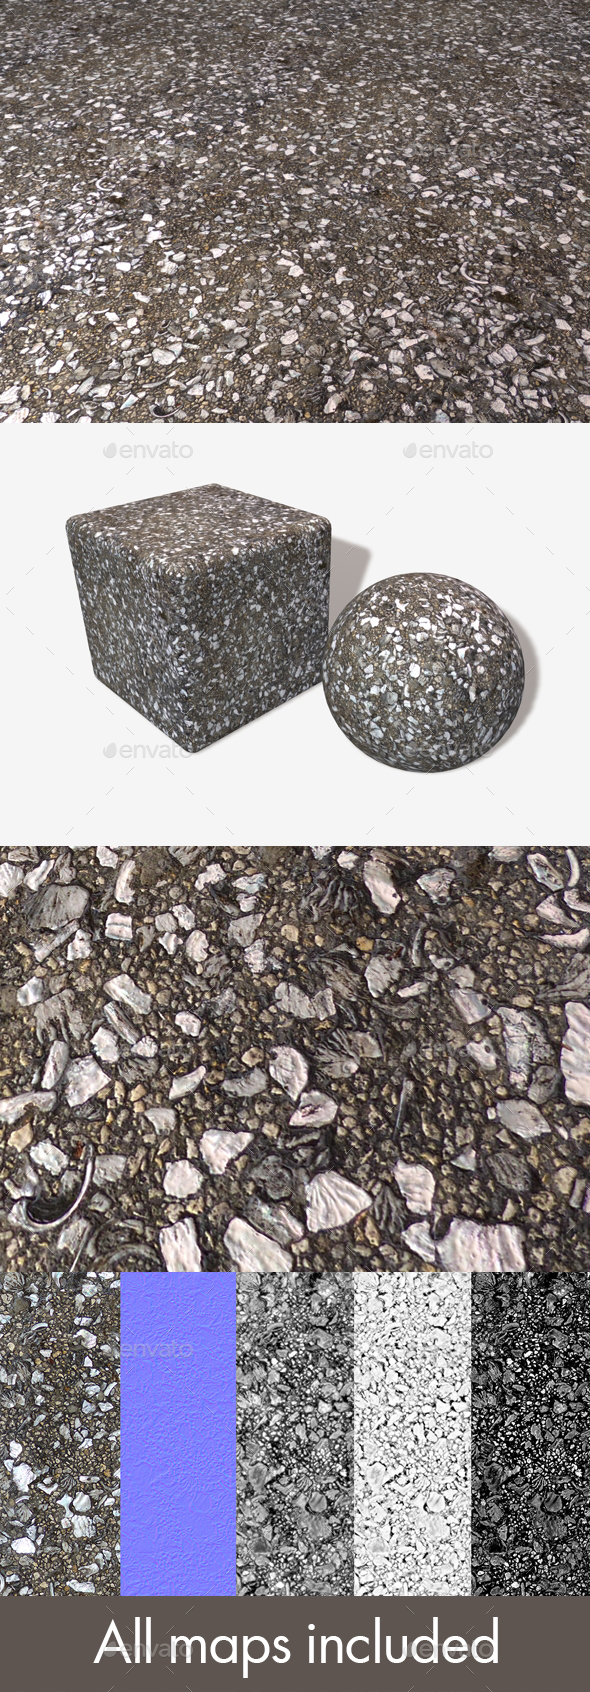 Recycled Shell Asphalt Seamless Texture - 3DOcean Item for Sale